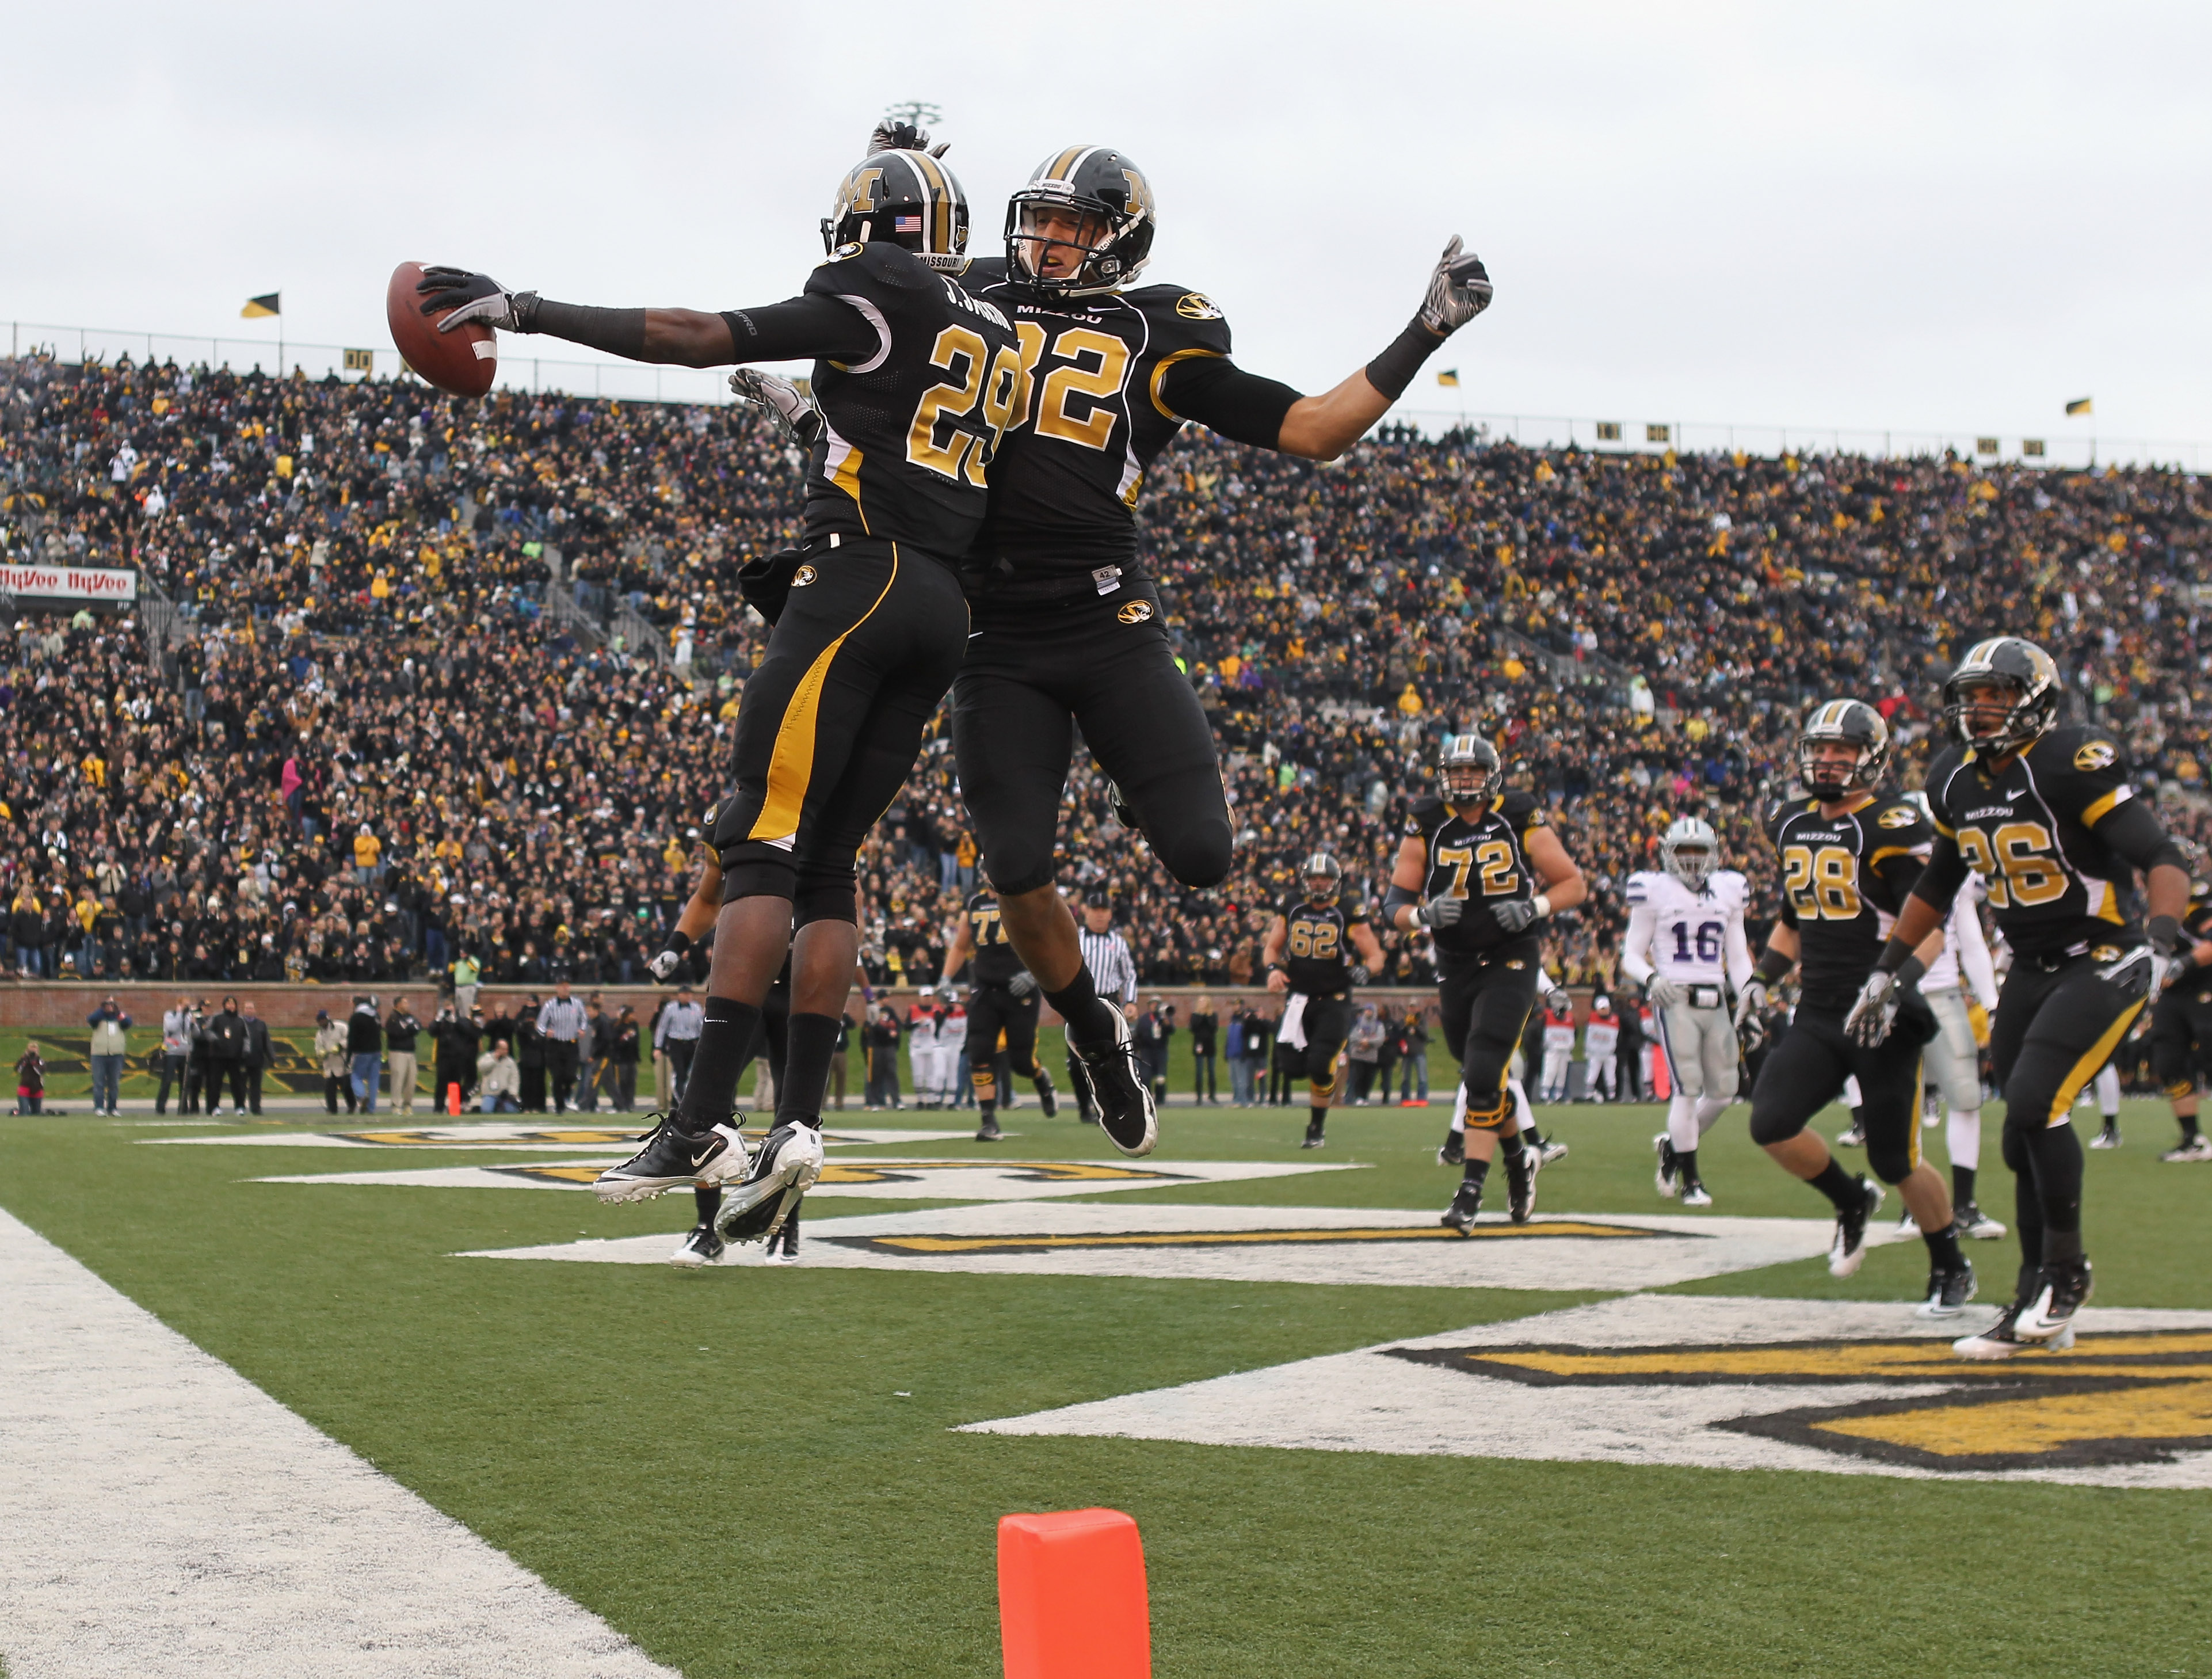 COLUMBIA, MO - NOVEMBER 13:  Michael Egnew #82  of the Missouri Tigers congratulates Jerrell Jackson #29 with a chest bump after Jackson carried for a touchdown during the game against the Kansas State Wildcats on November 13, 2010 at Faurot Field/Memoria